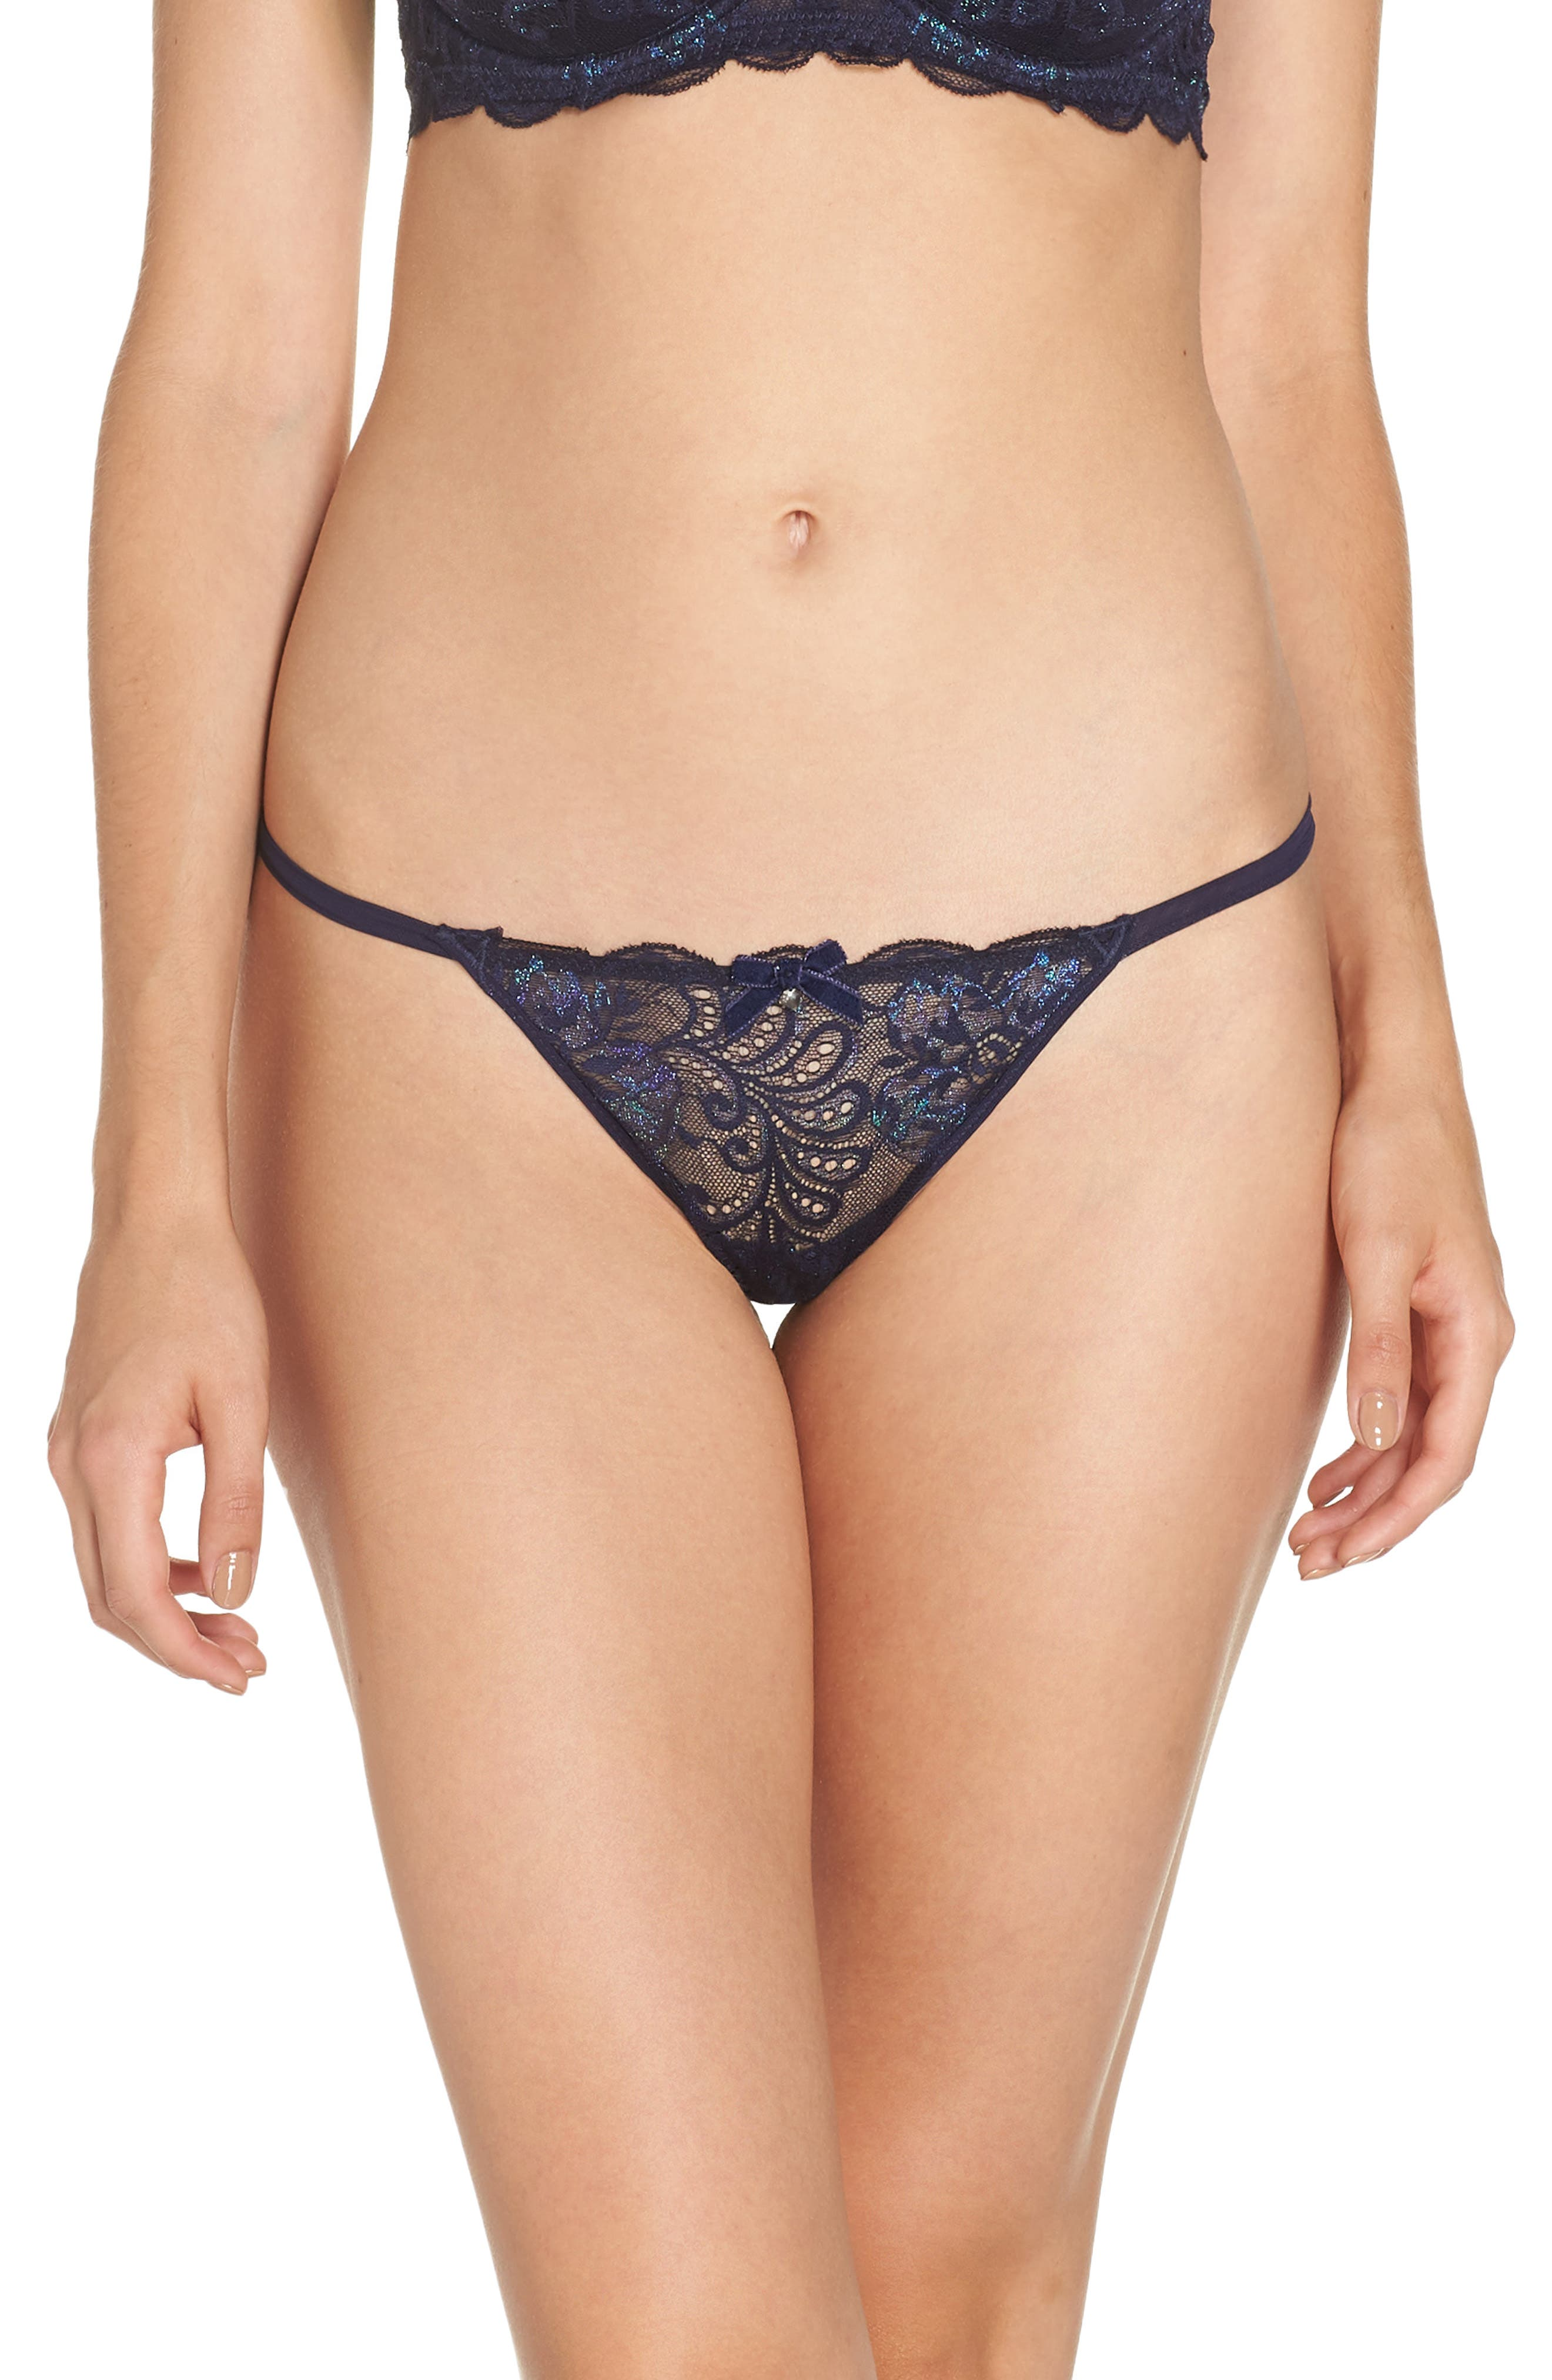 'Sophia' Lace Thong in Sapphire